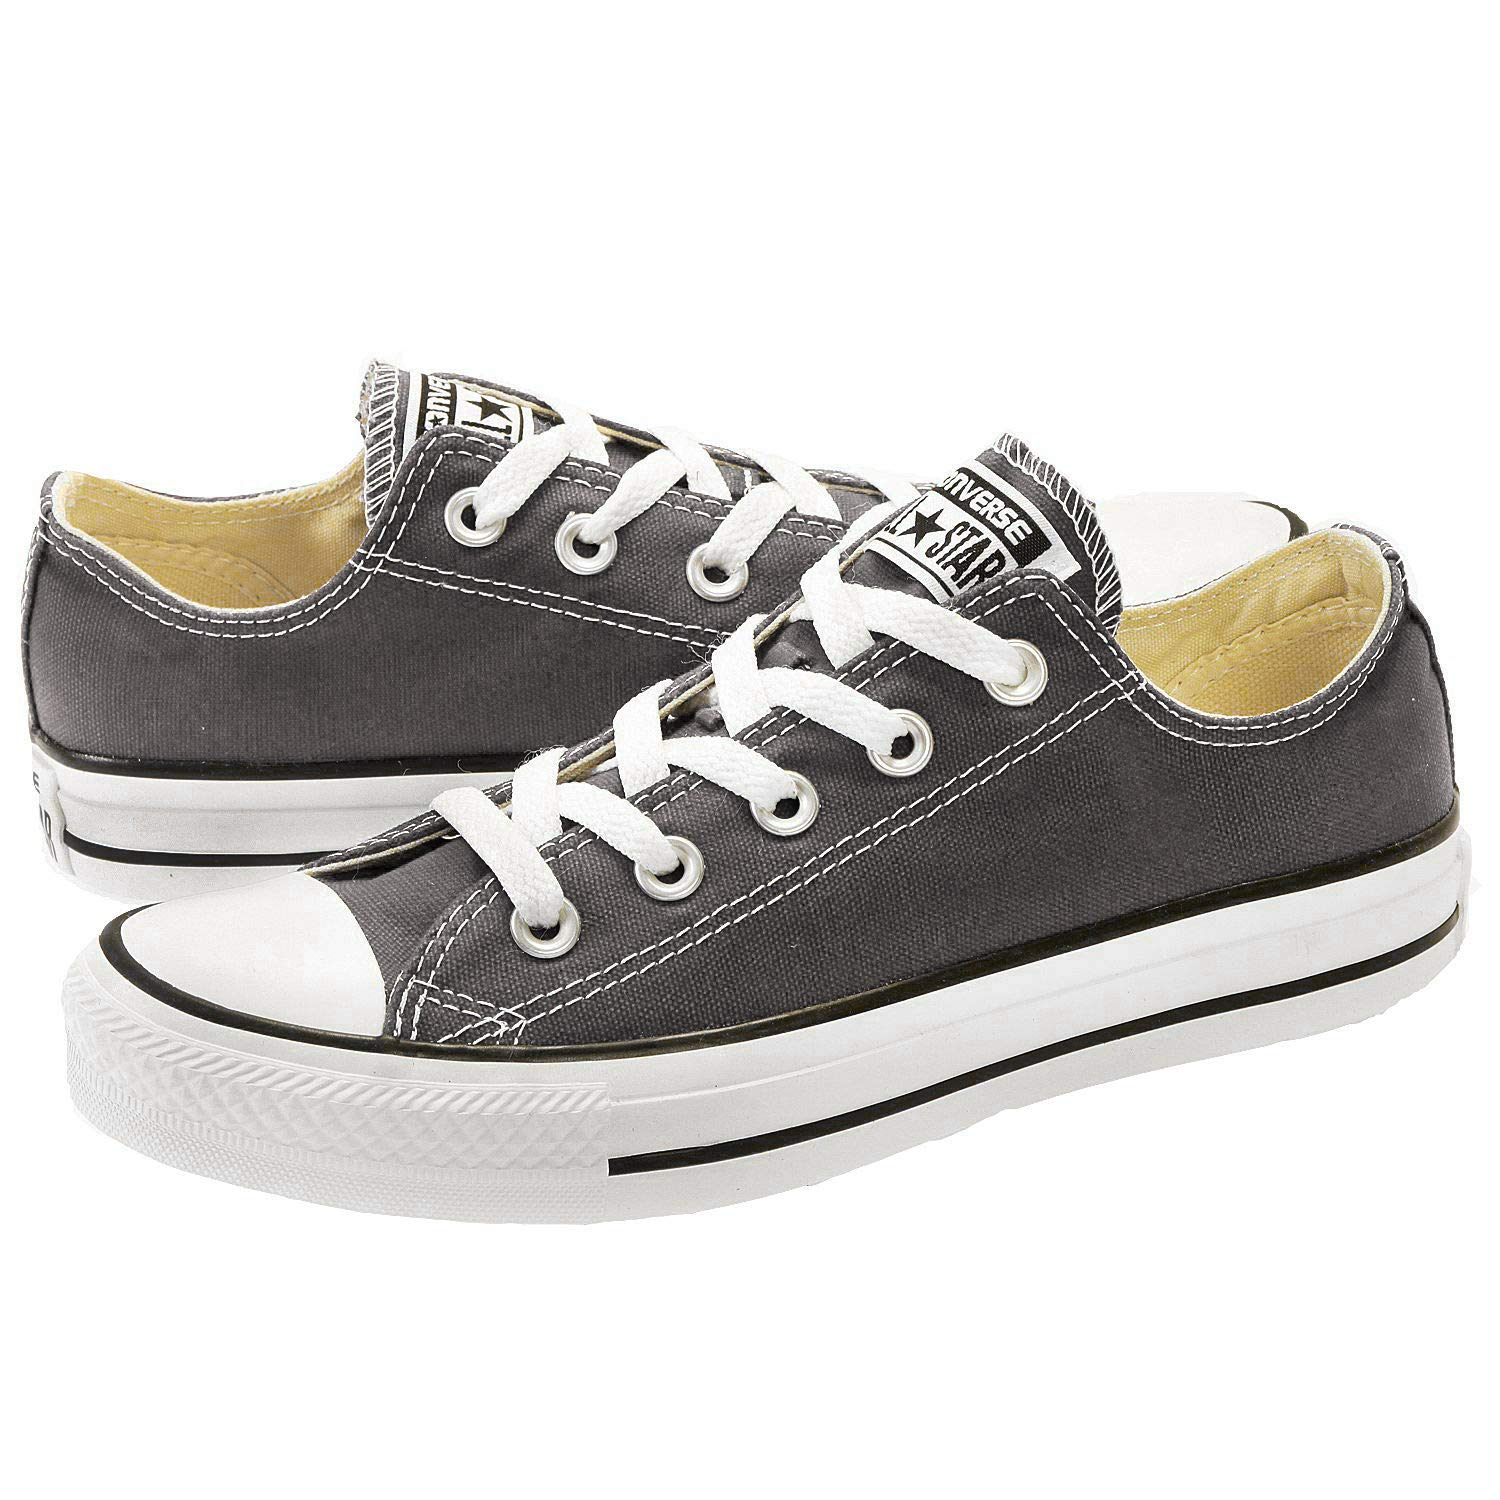 Converse Taylor All Star Ox Black M91, Baskets Basses Mixte Adulte